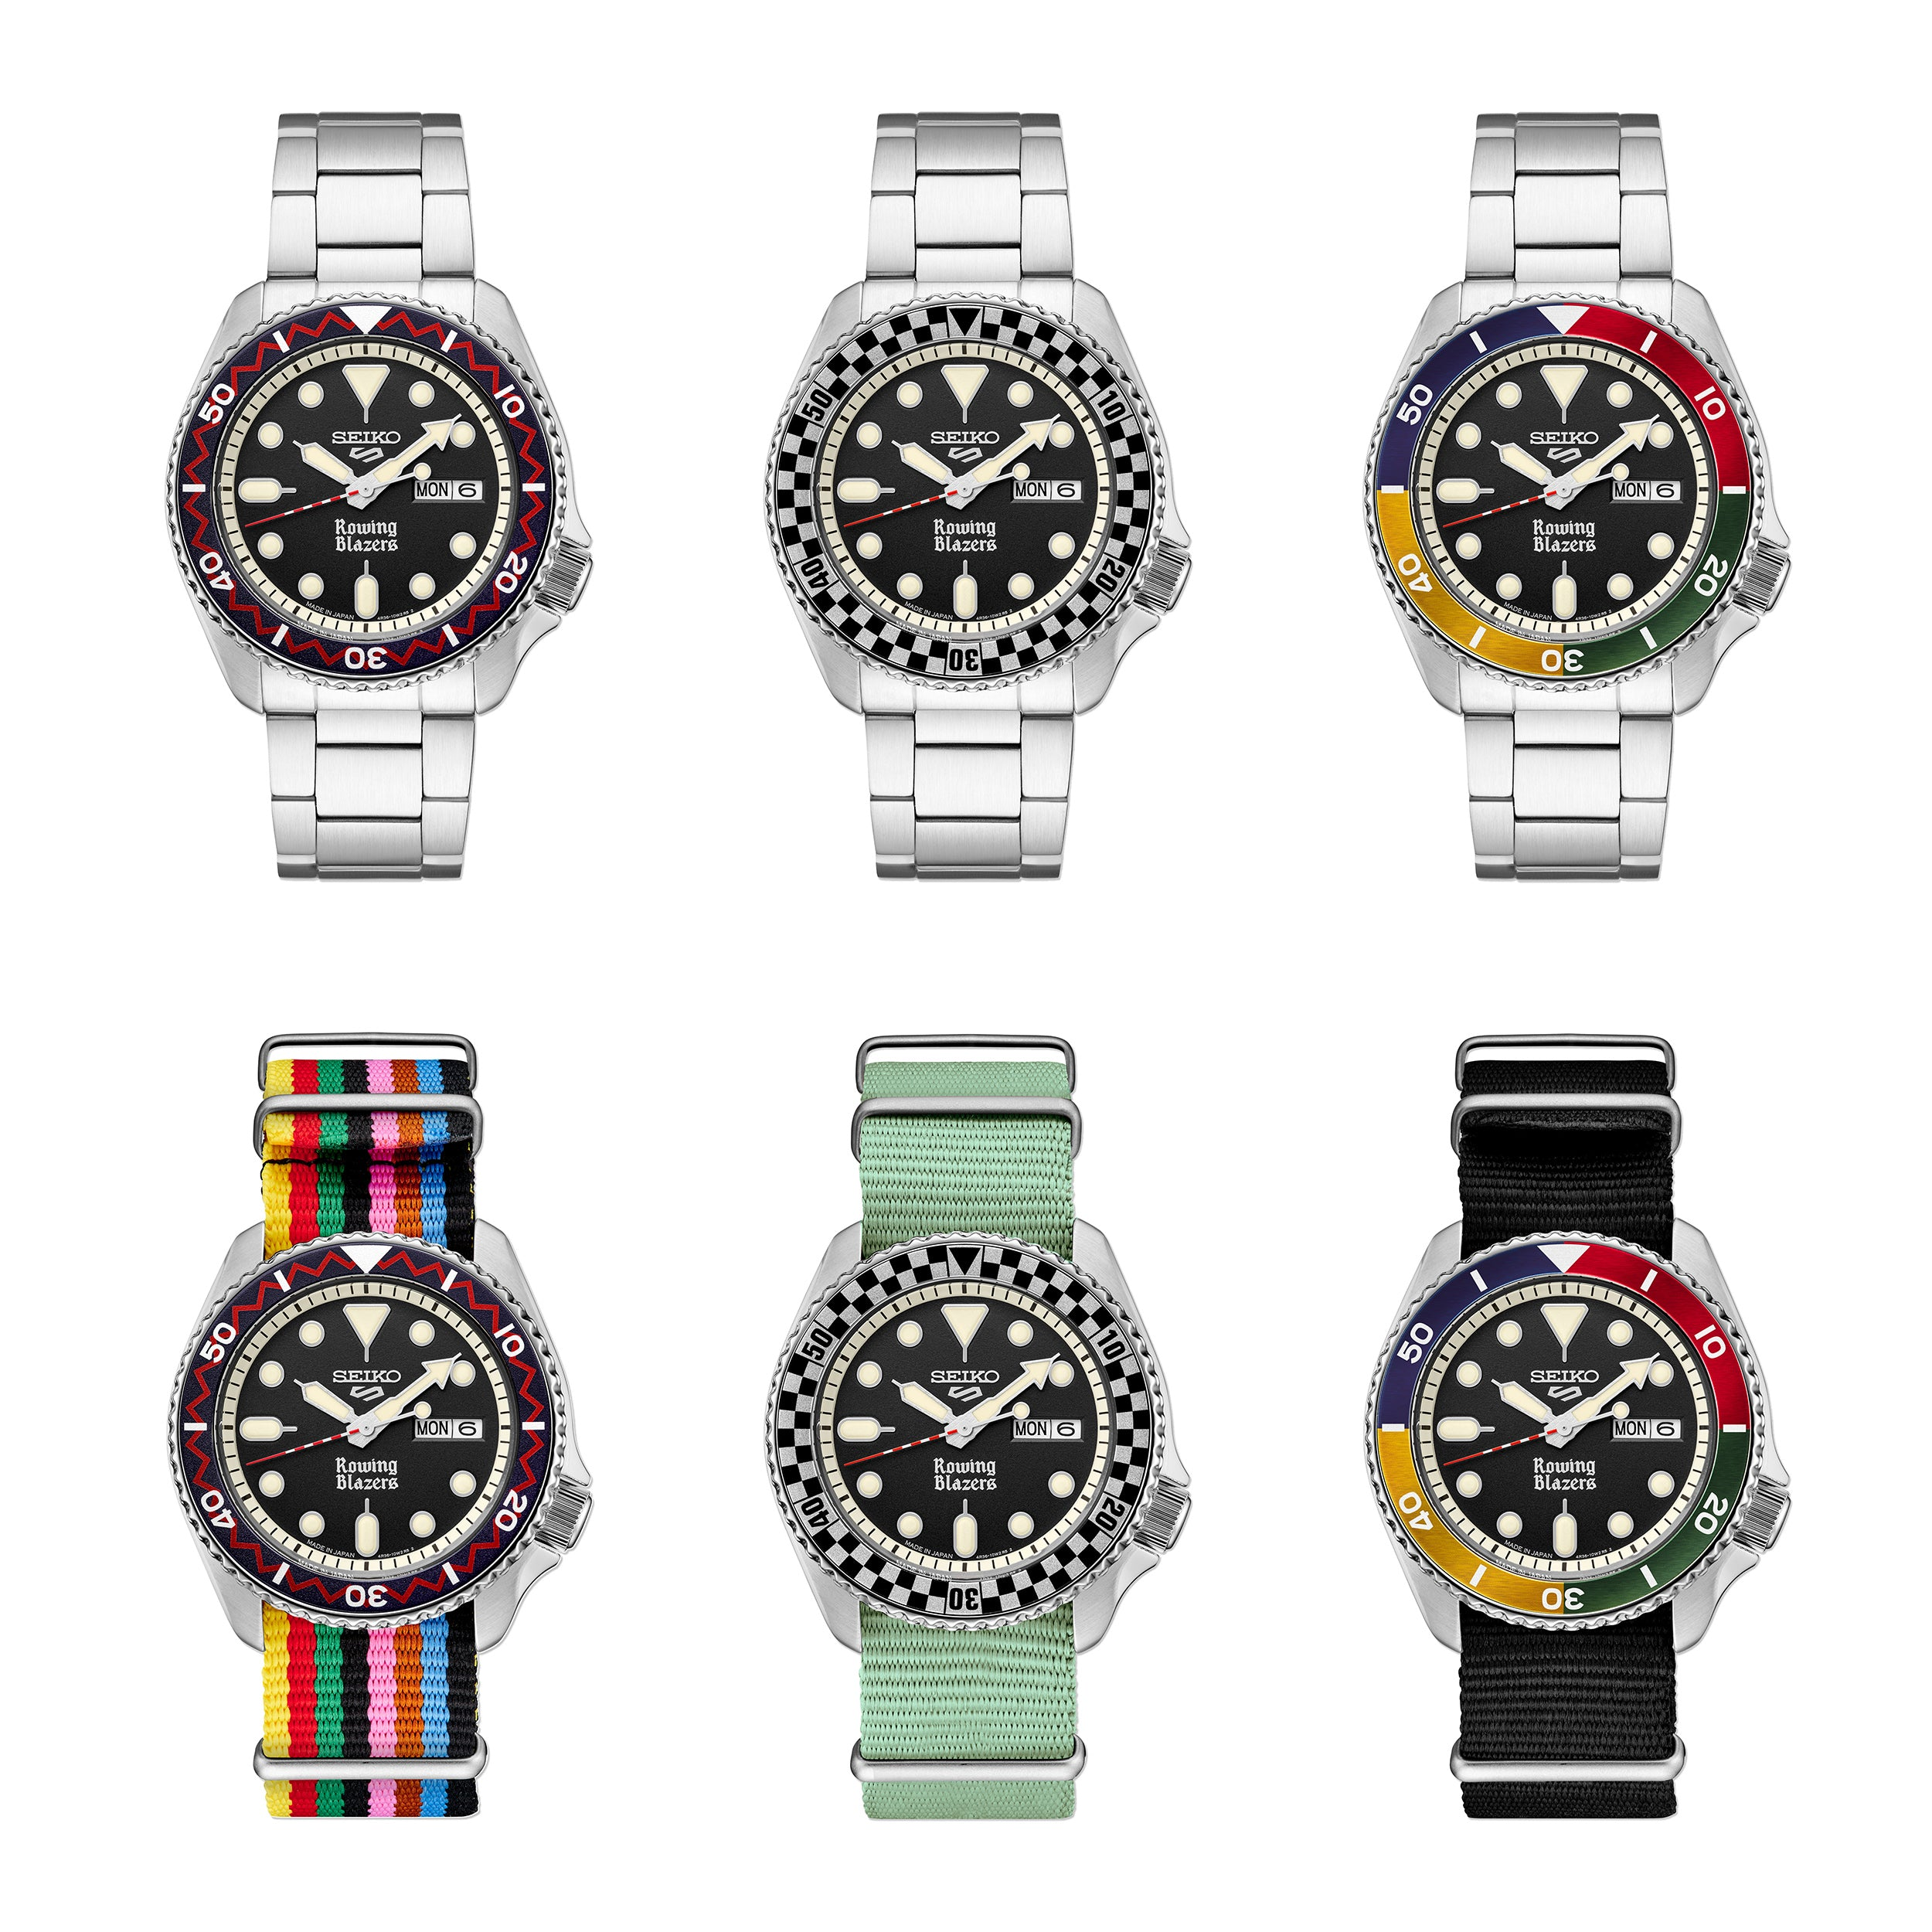 Six Seiko x Rowing Blazers limited edition watches in The Role Played by 'Collaborations' in Watchmaking for A Collected Man London